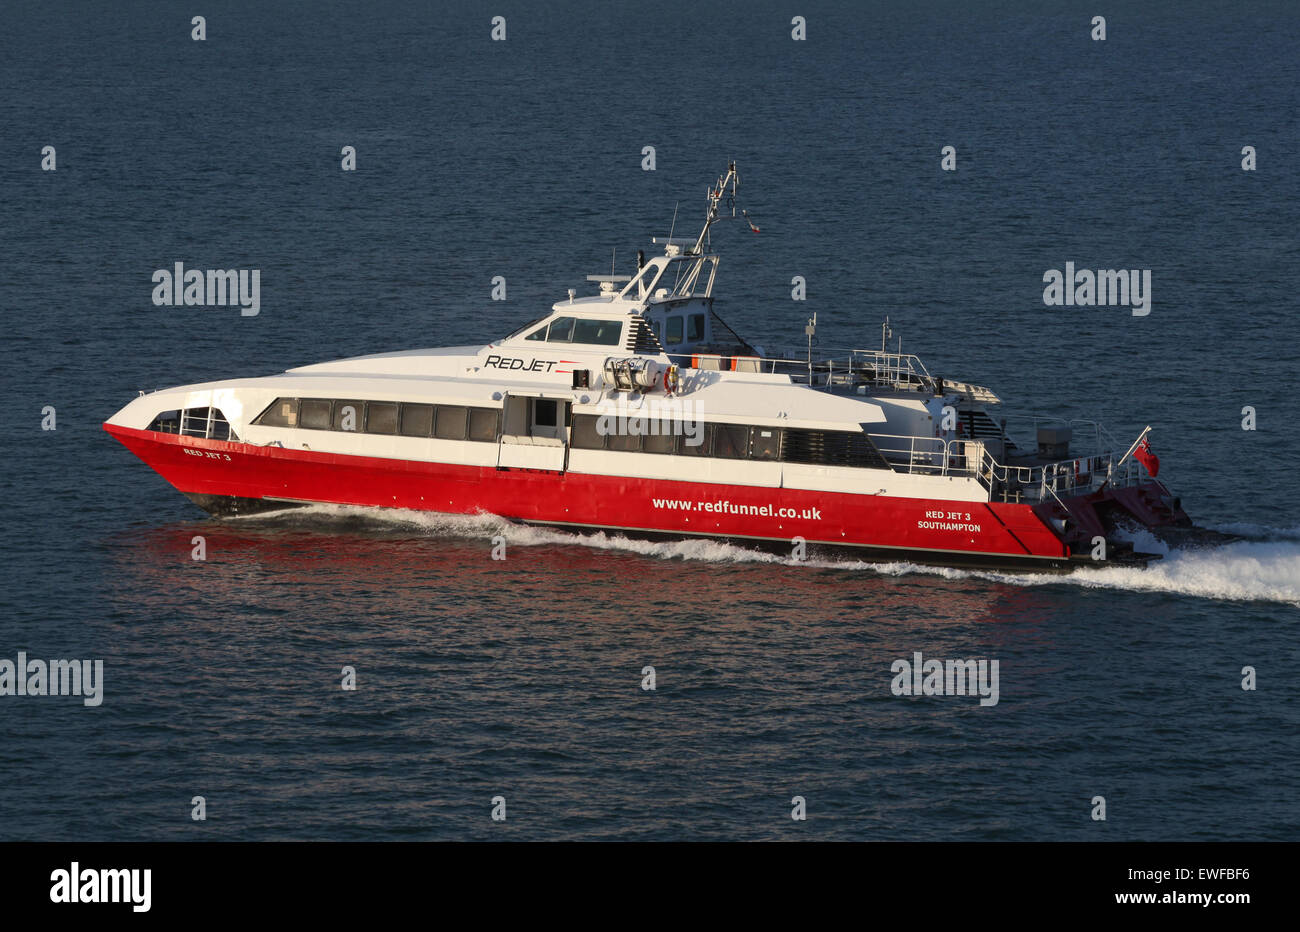 Red Funnel Ferries Red Jet operating between Southampton and Cowes on the Isle of Wight - Stock Image